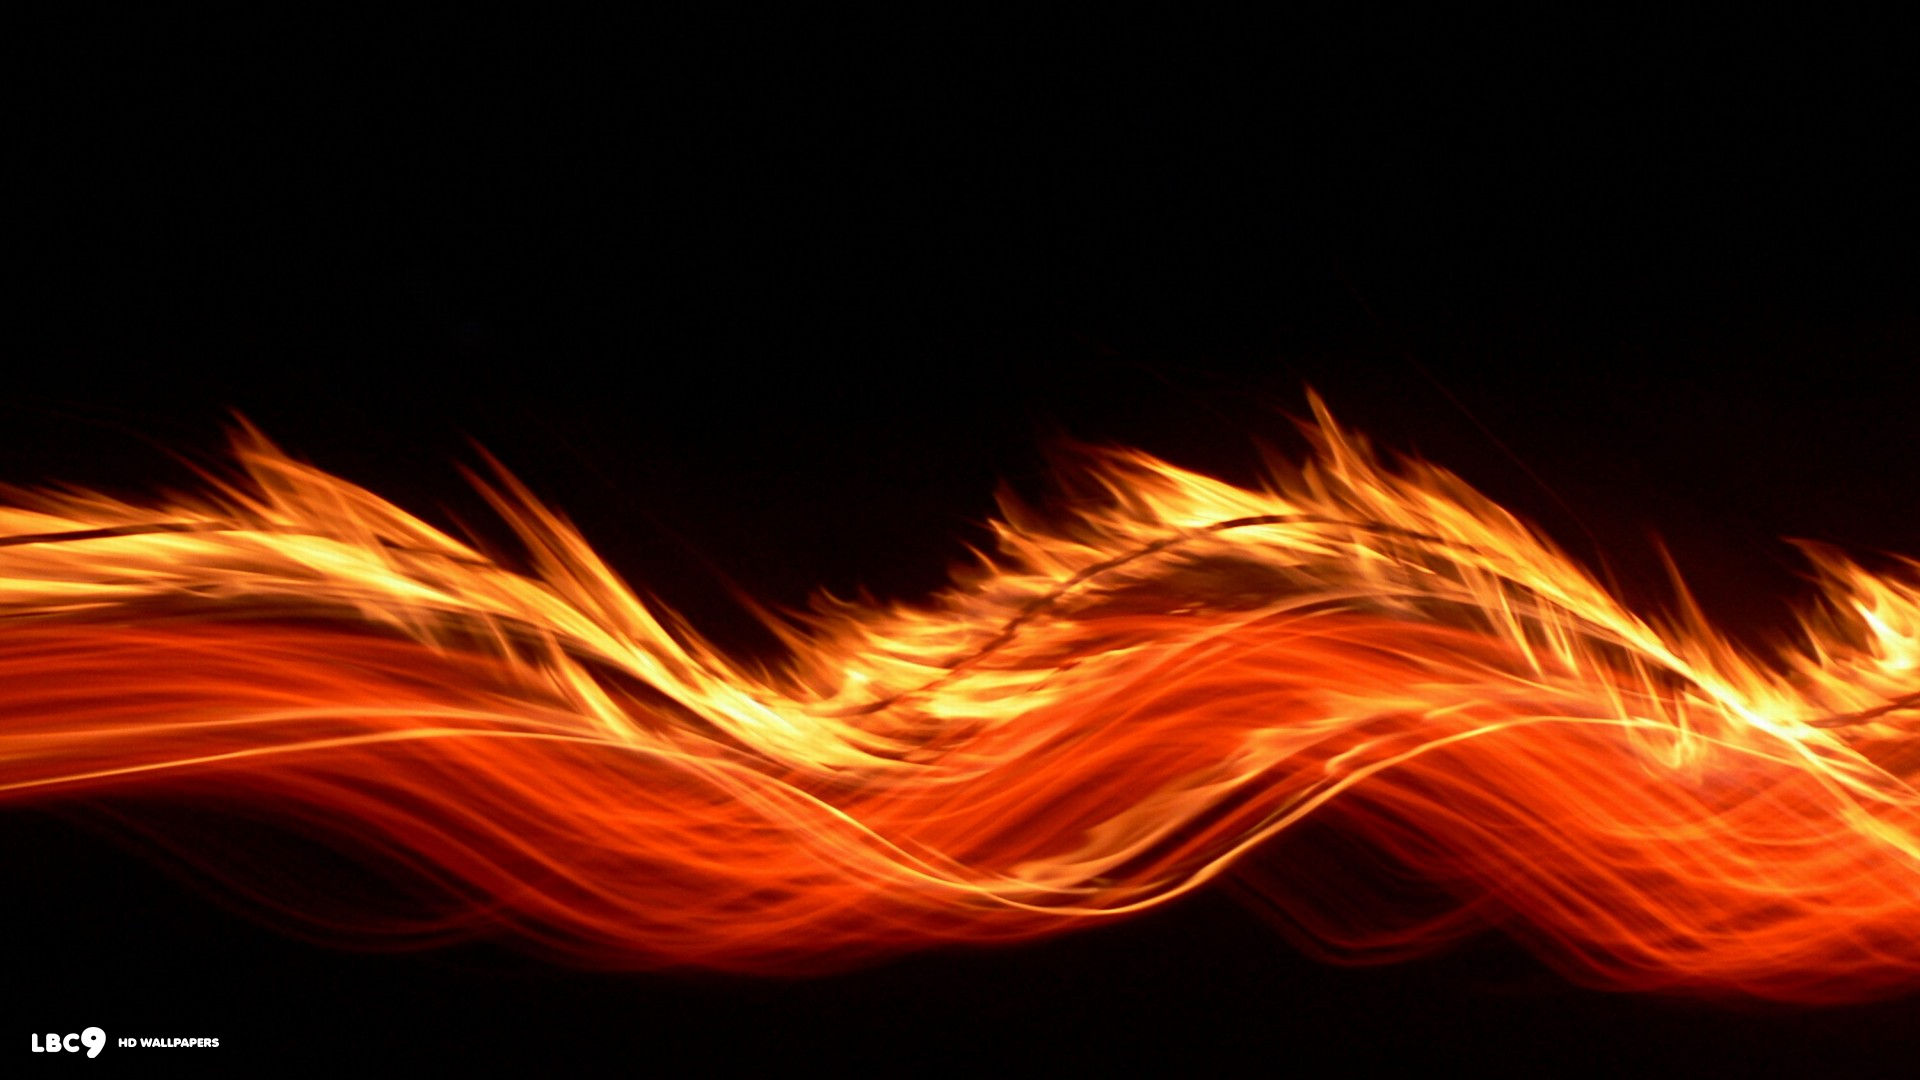 fire and flames wallpaper 1/4 | abstract hd backgrounds